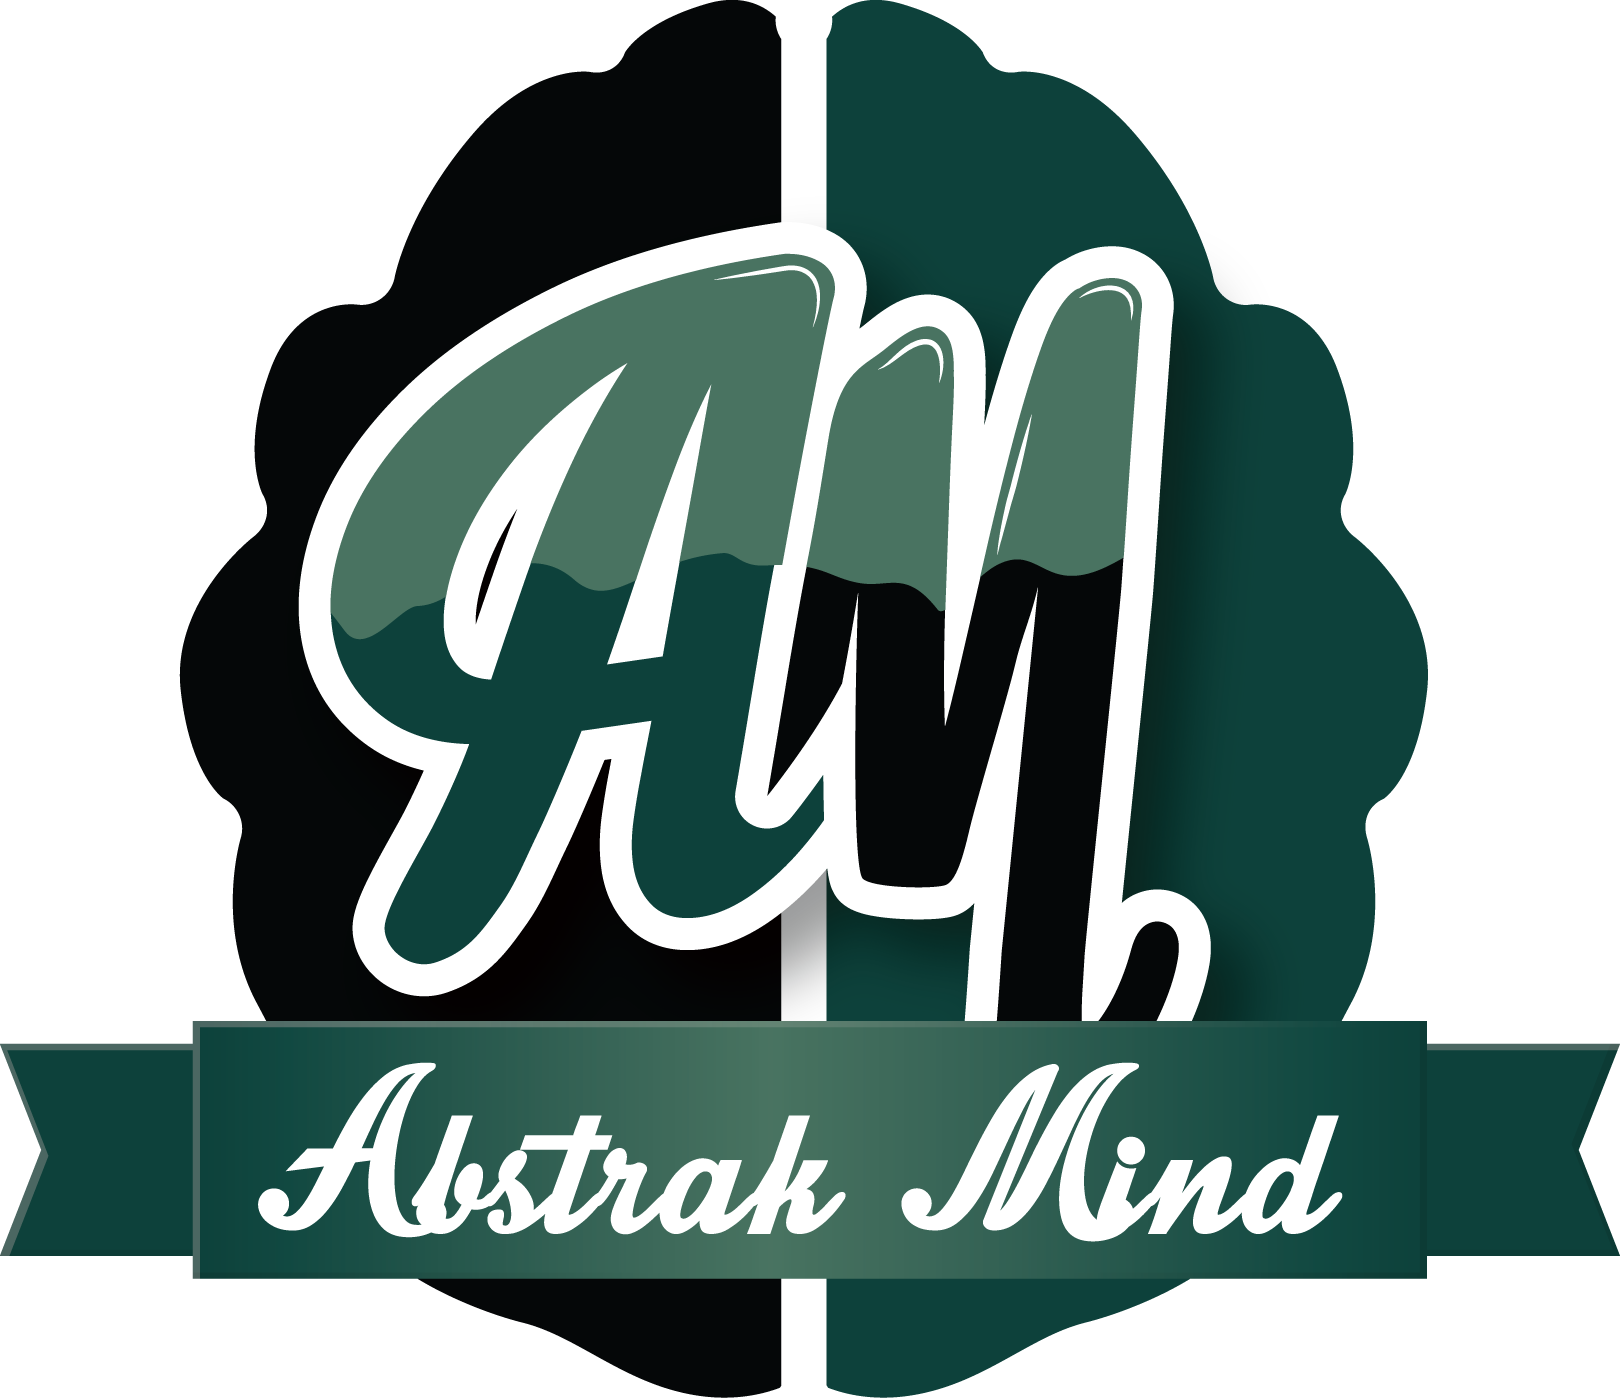 Abstrak_Mind_-_Logo-final.png